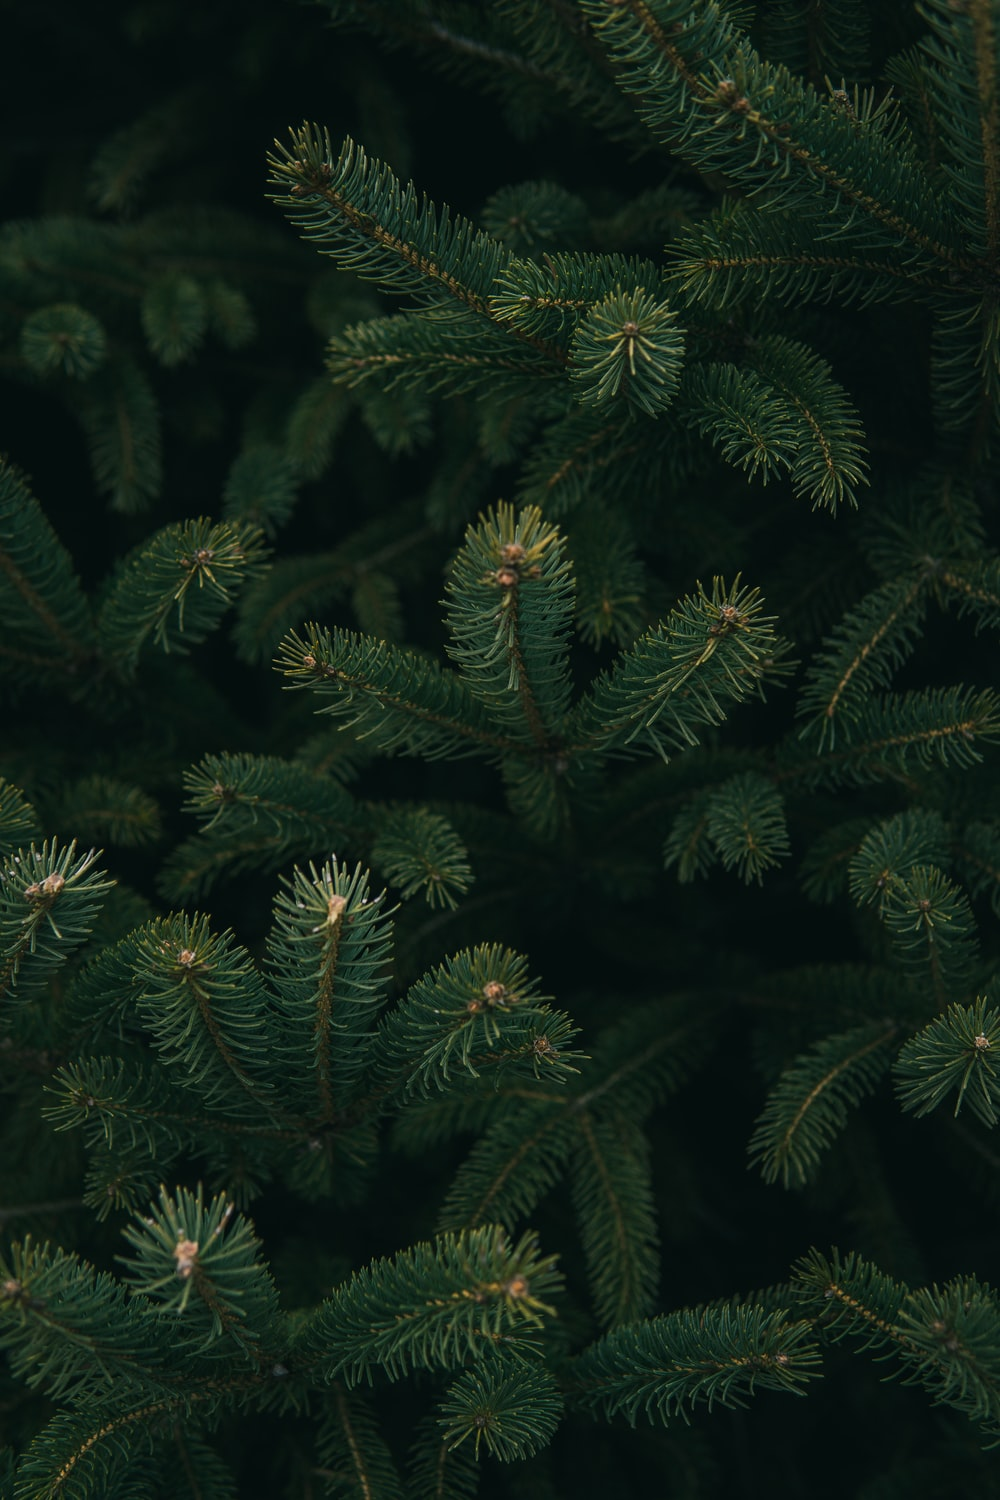 close up photo of green Christmas tree